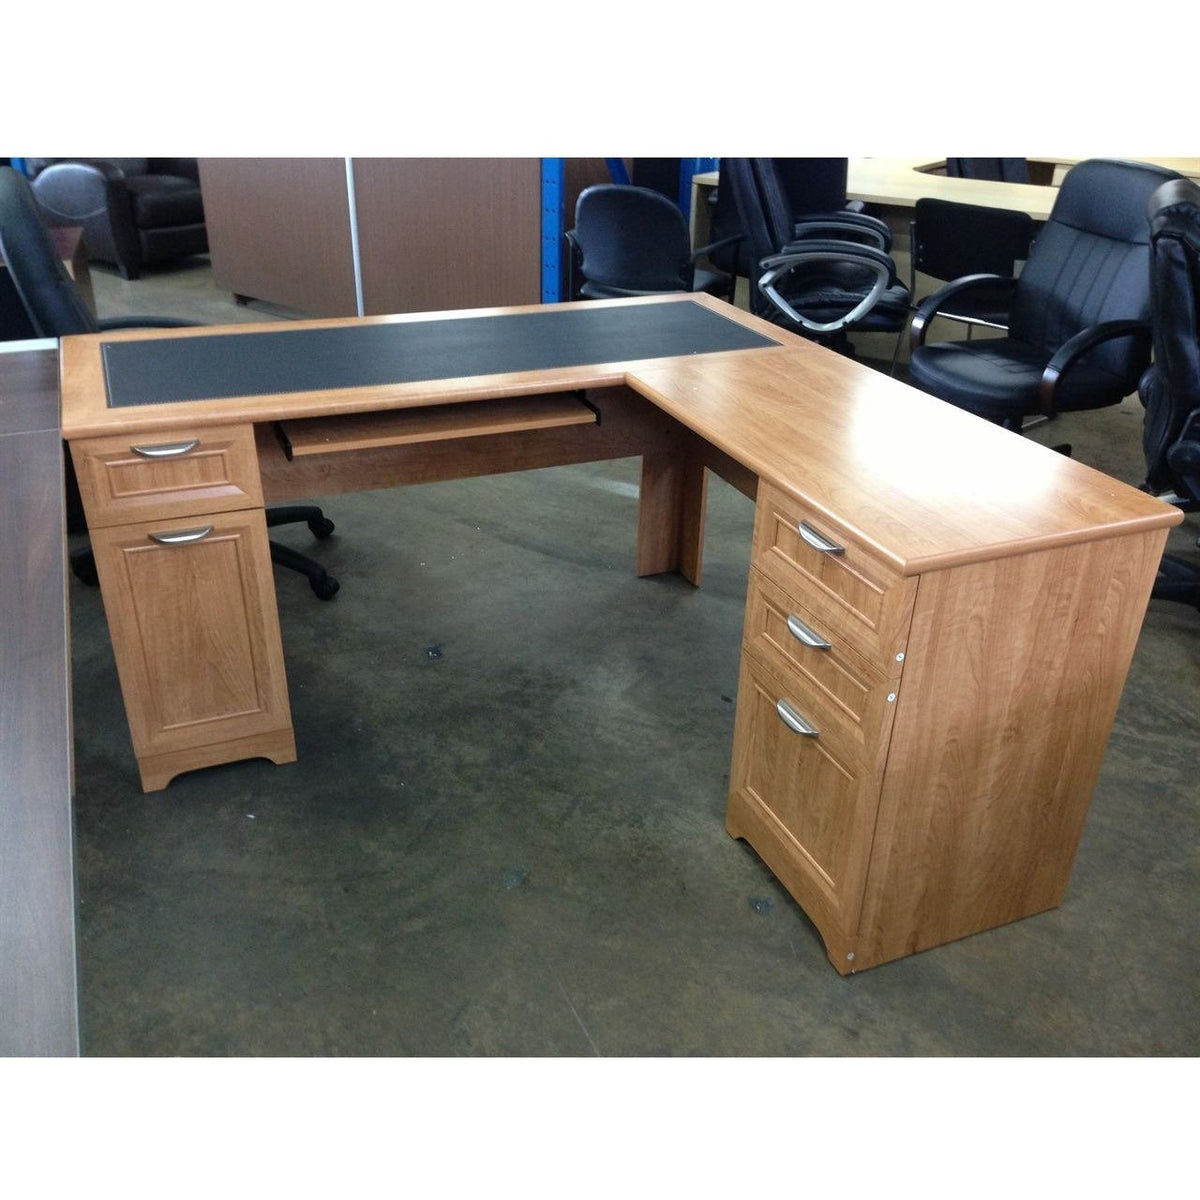 Scratch And Dent L Shaped Outlet Desk 60 Wide X 60 Deep X 30 High Office Furniture 4 Sale